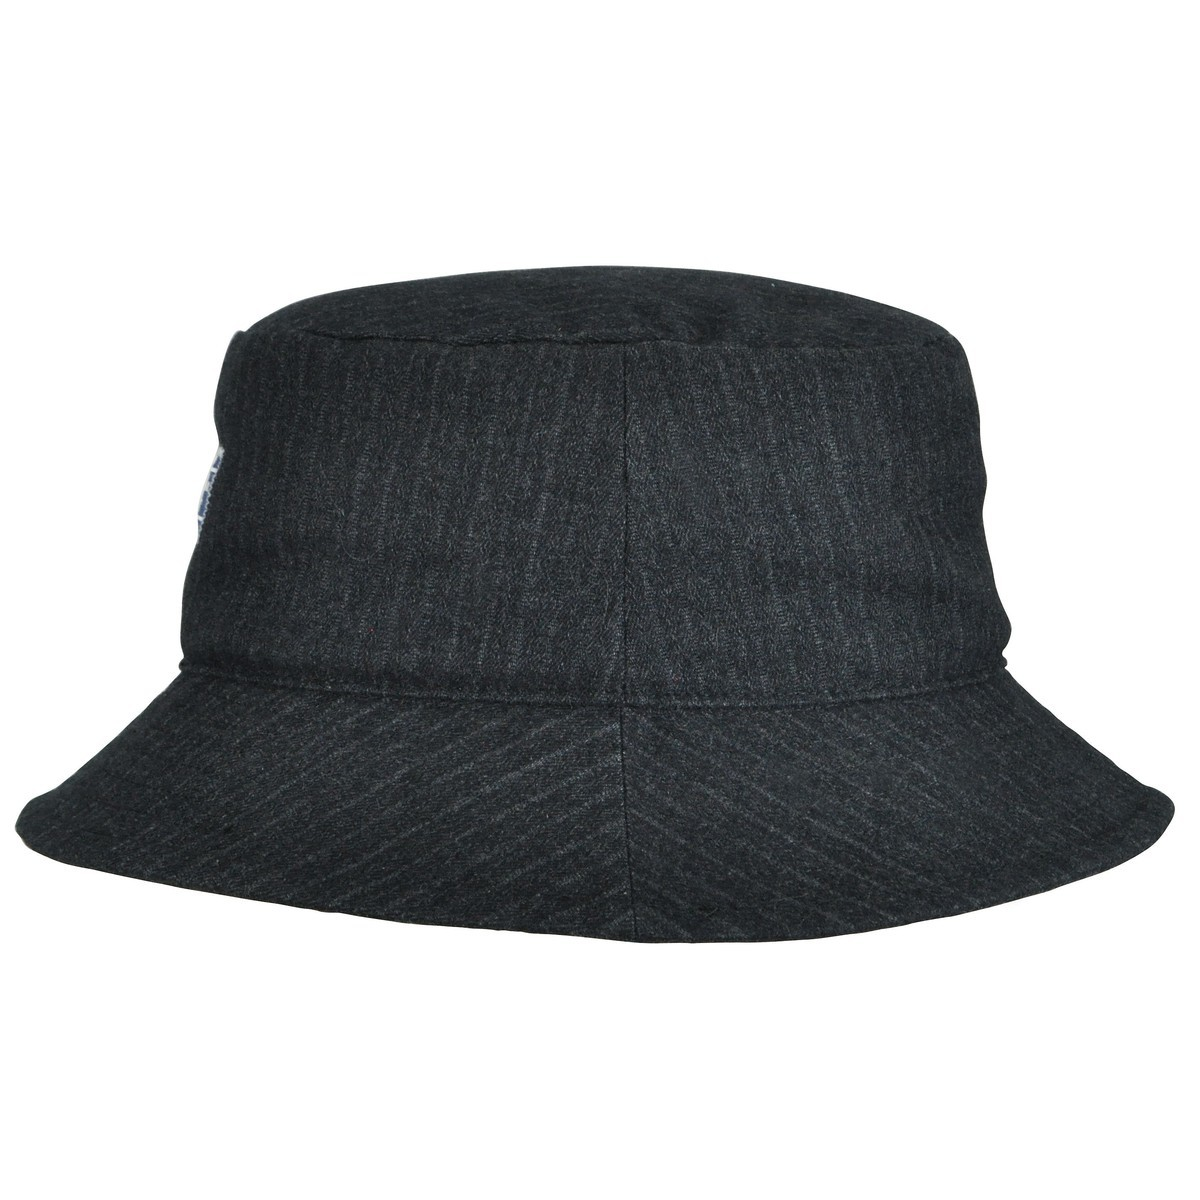 Kangol カンゴール Suited Spey Dark Flannel バケットハット 帽子 Dark Flannel